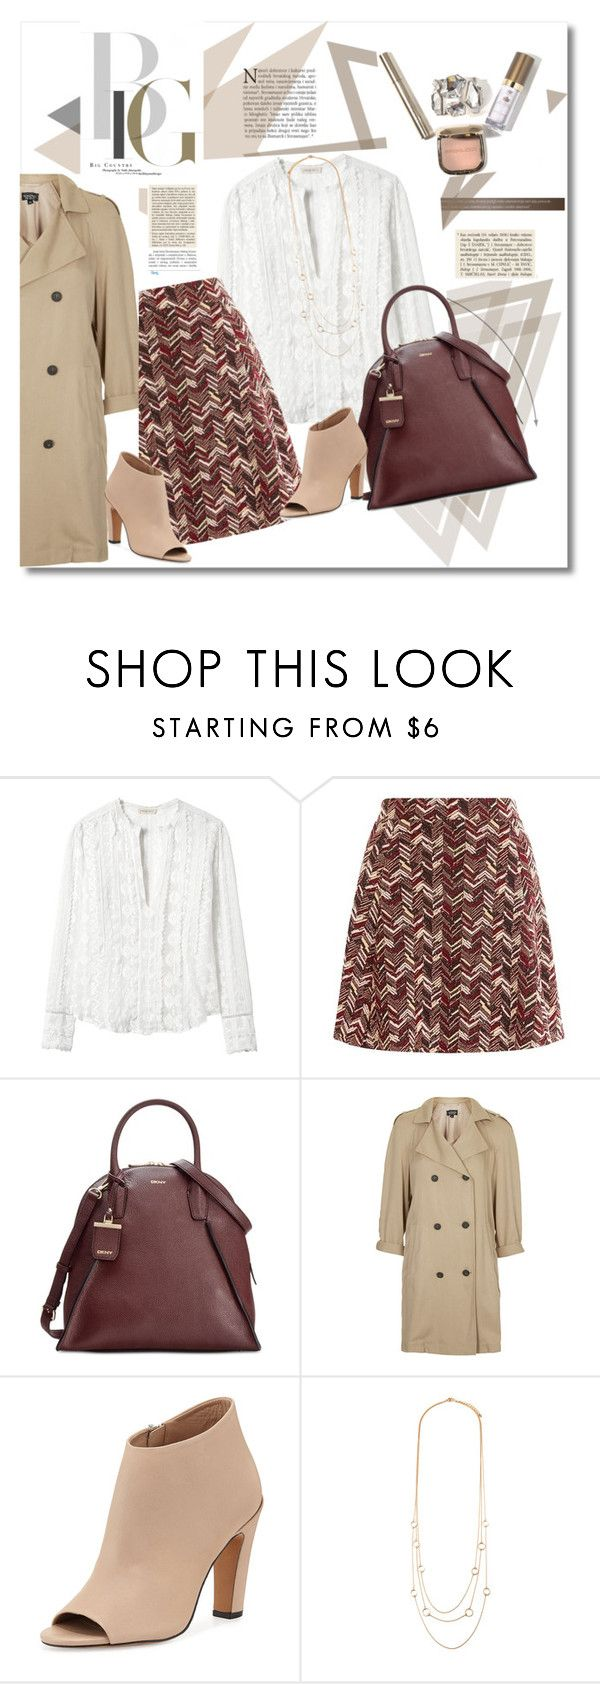 look the day by vkmd on Polyvore featuring Rebecca Taylor, Topshop, Vince, DKNY, Forever 21 and GetTheLook